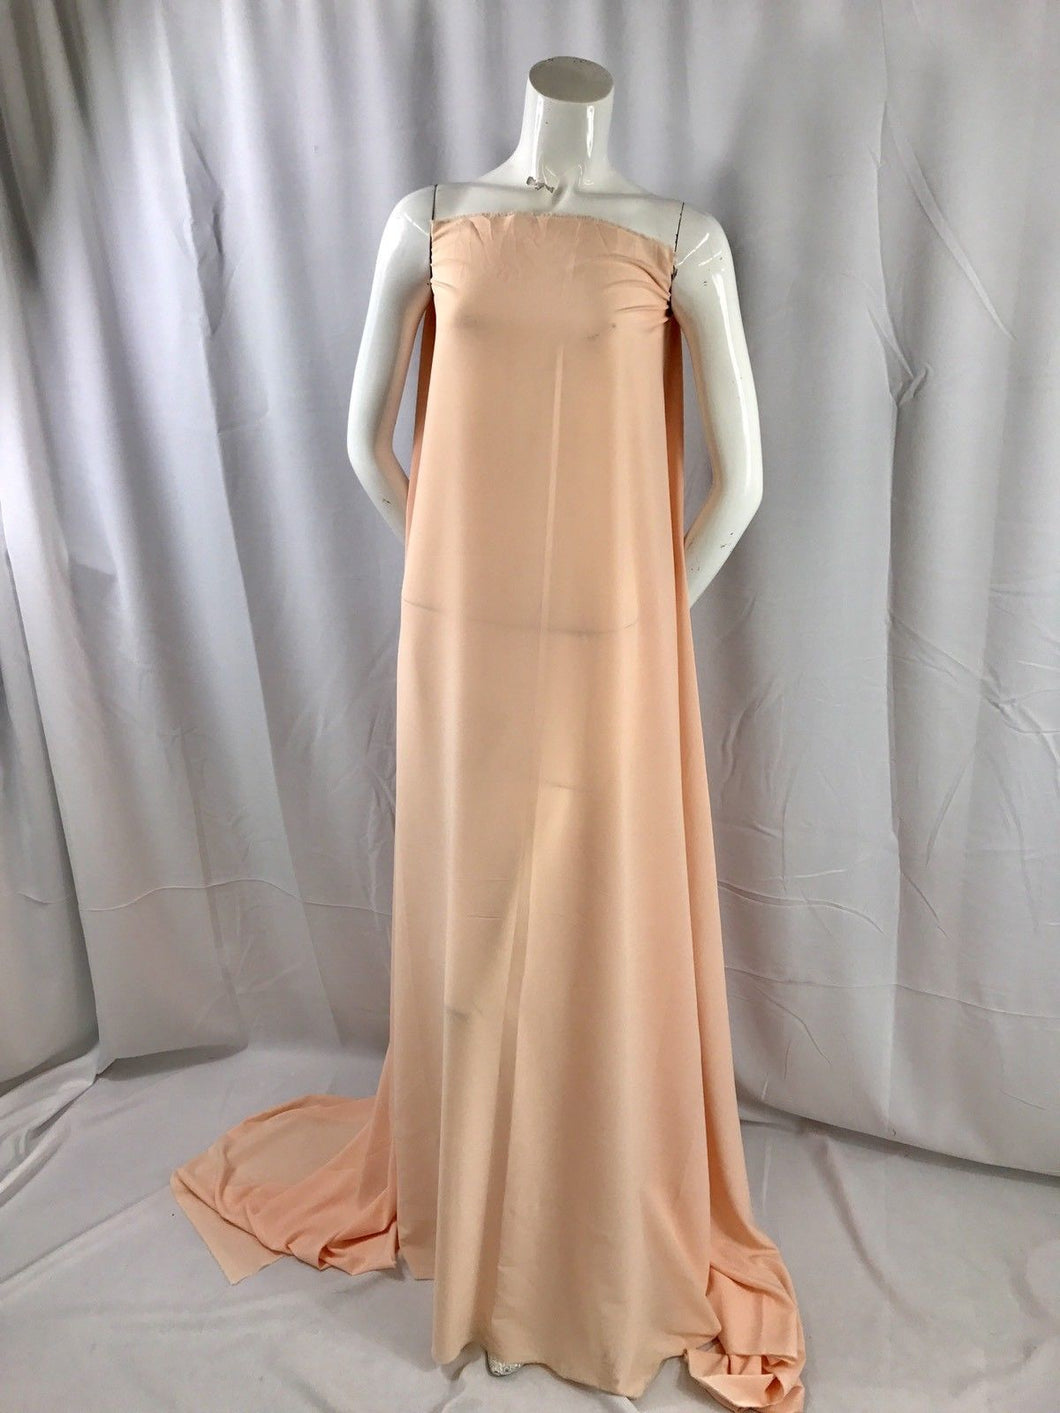 PEACH 2 WAY STRETCH POLYESTER CHIFFON DRESS LINING-SHEER-58